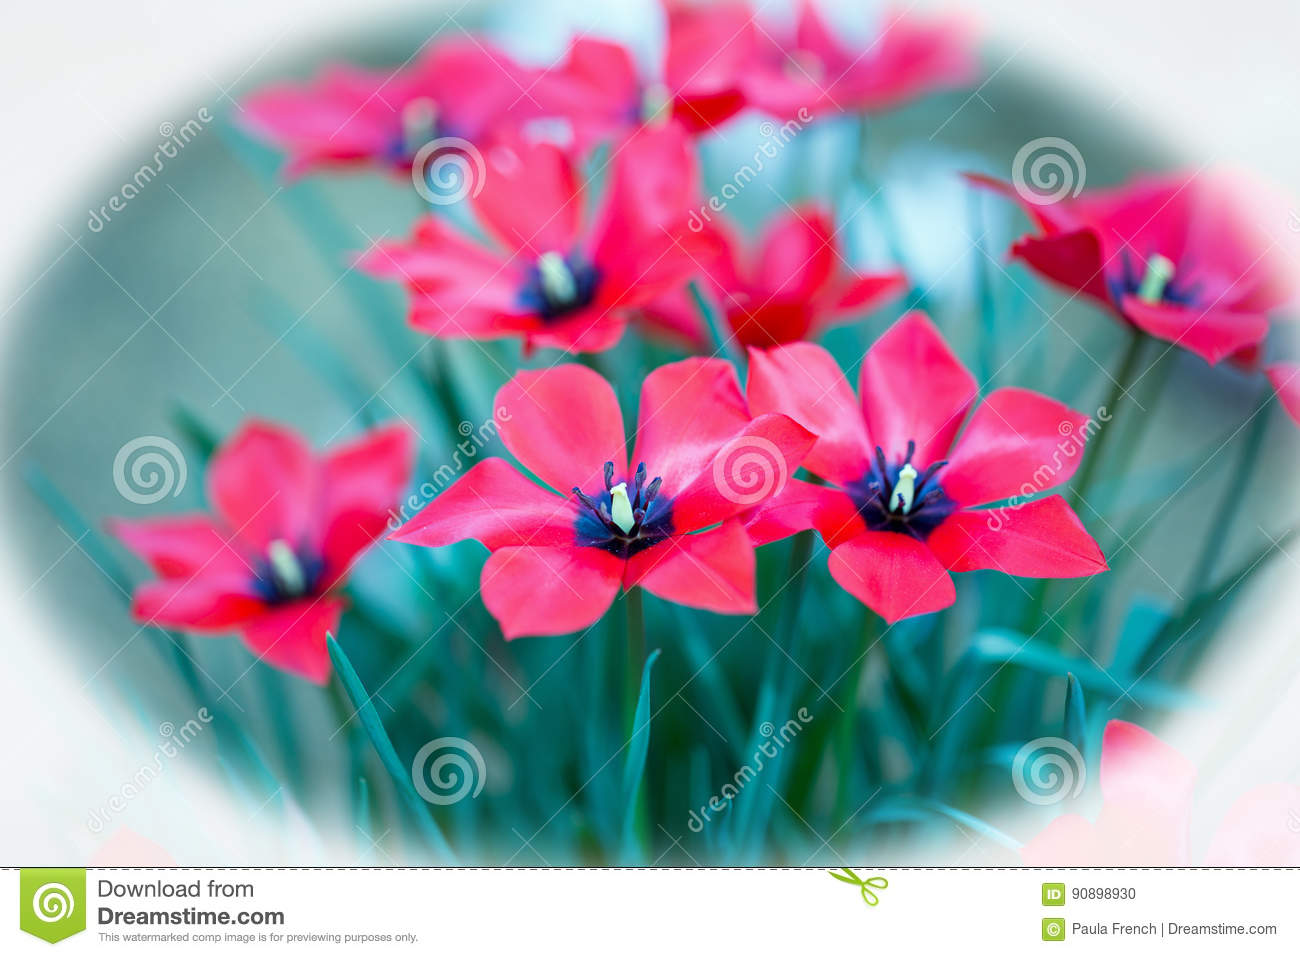 Pretty Small Red Glossy Flowers With A Black Stamen In Full Bloom